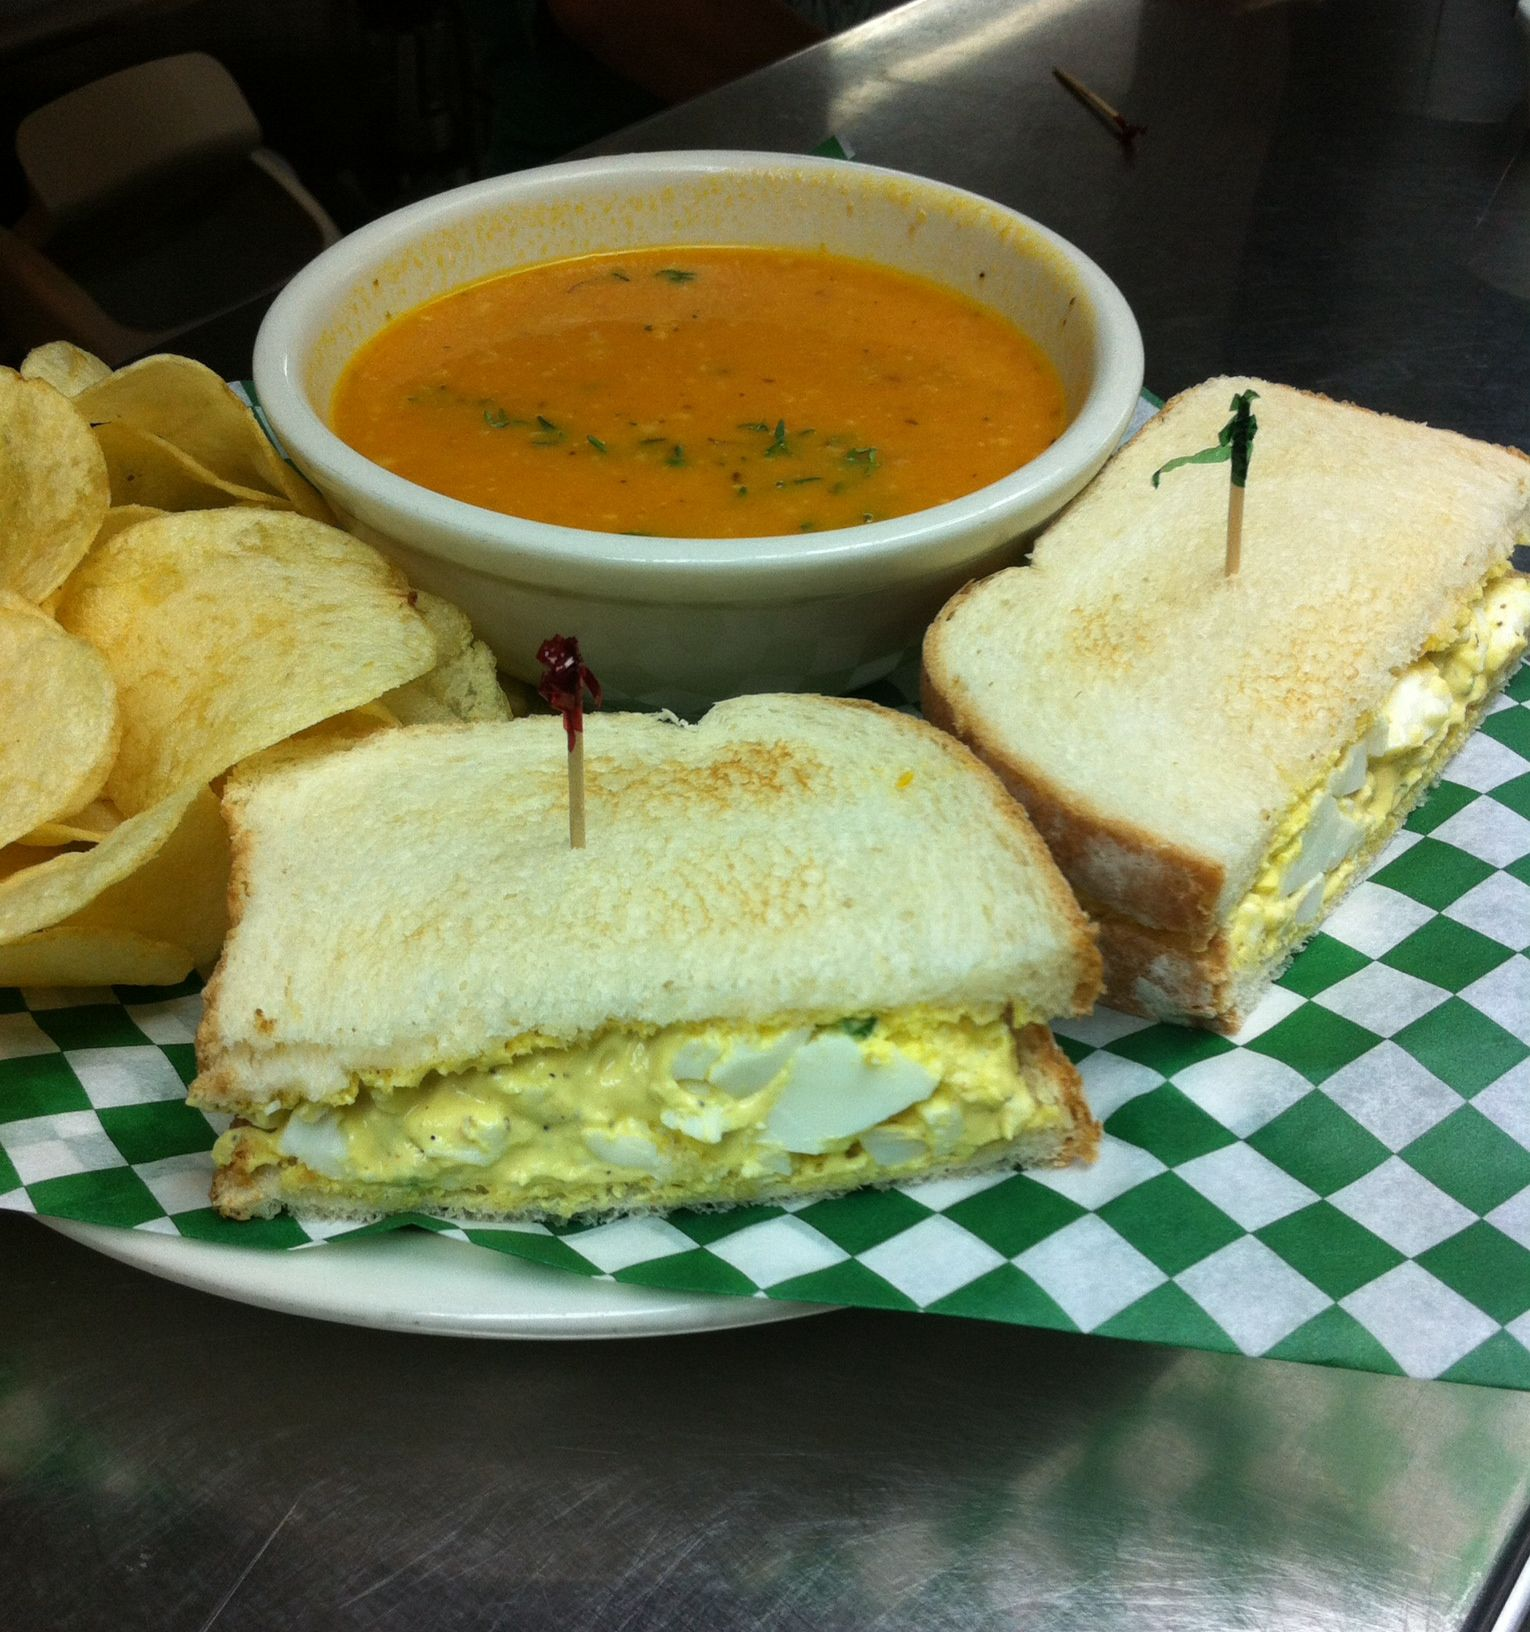 Special Egg Salad Sandwich Chips Creamy Tomato Soup Drink Tax 10 Fultoncafe Eggsaladsandwich Creamytomatosoup At Fu Food Recipes Creamy Tomato Soup